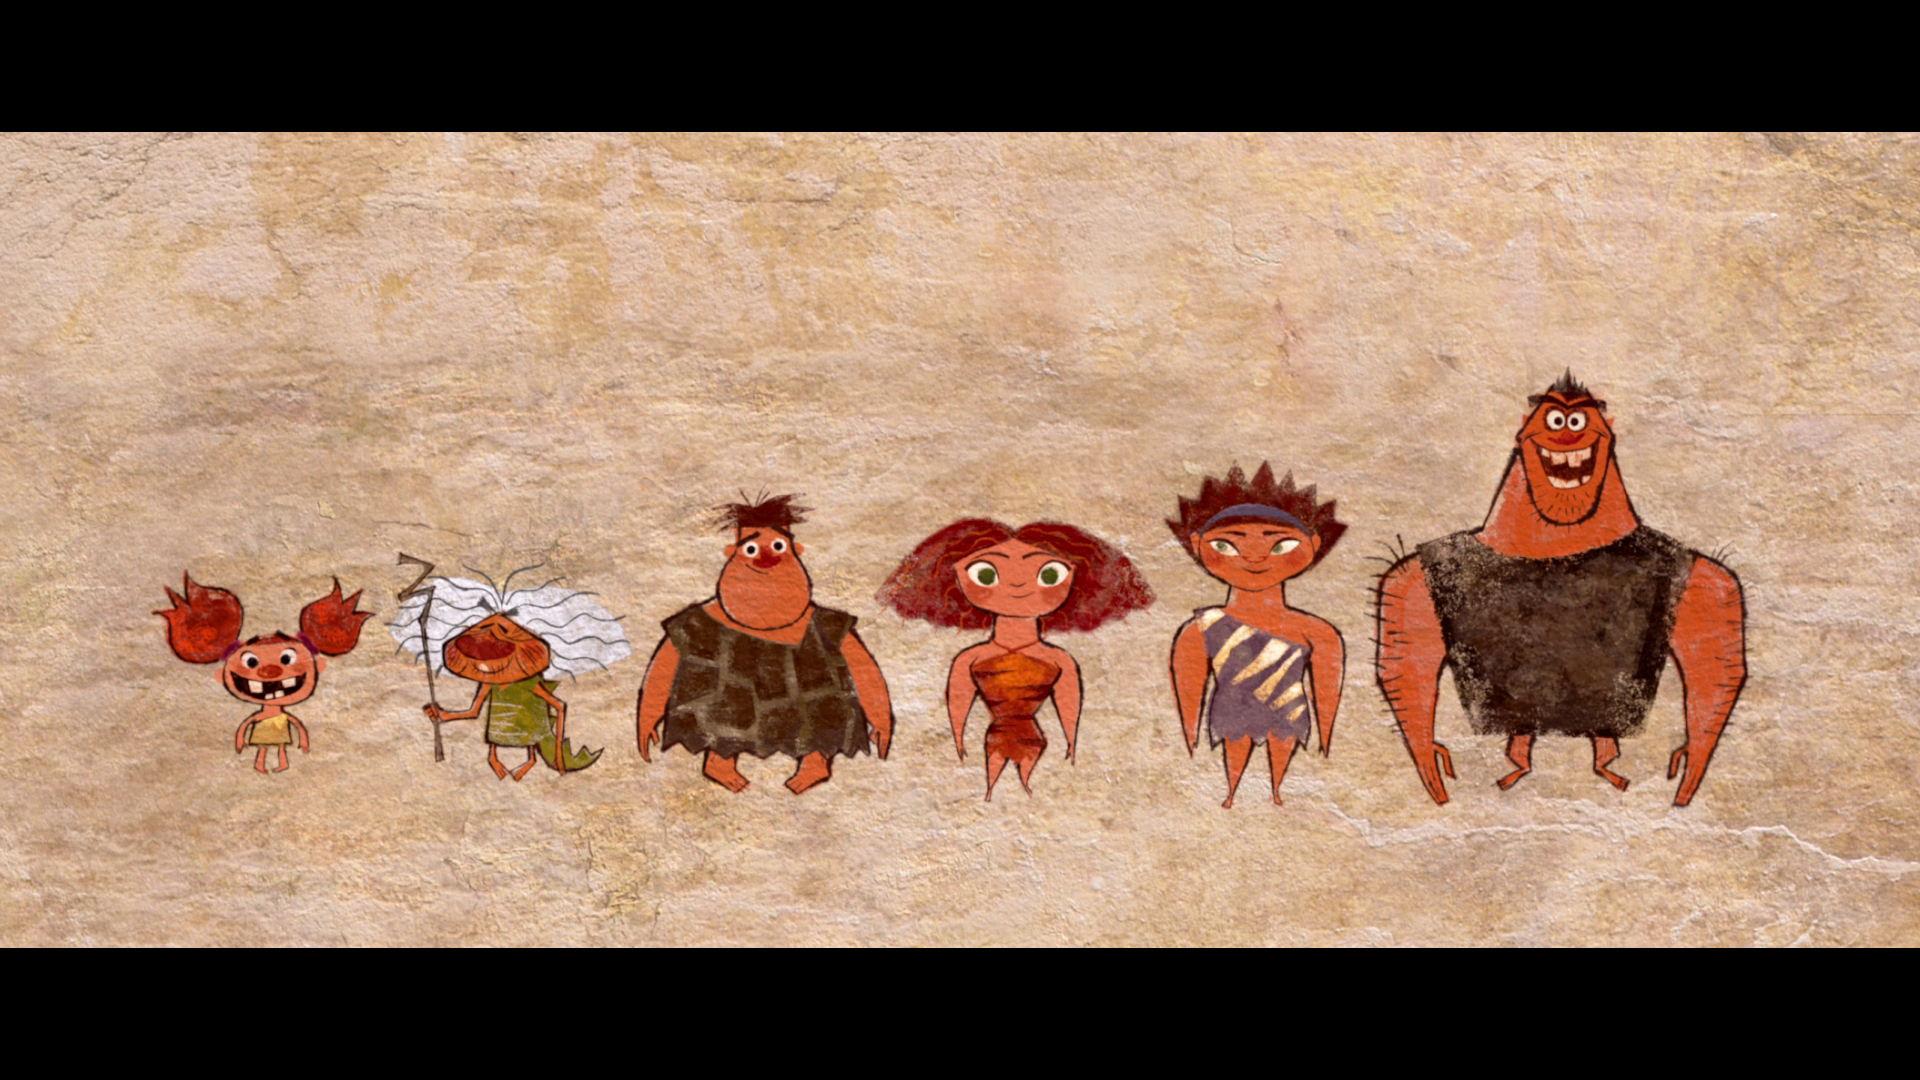 the croods (blu-ray) : dvd talk review of the blu-ray